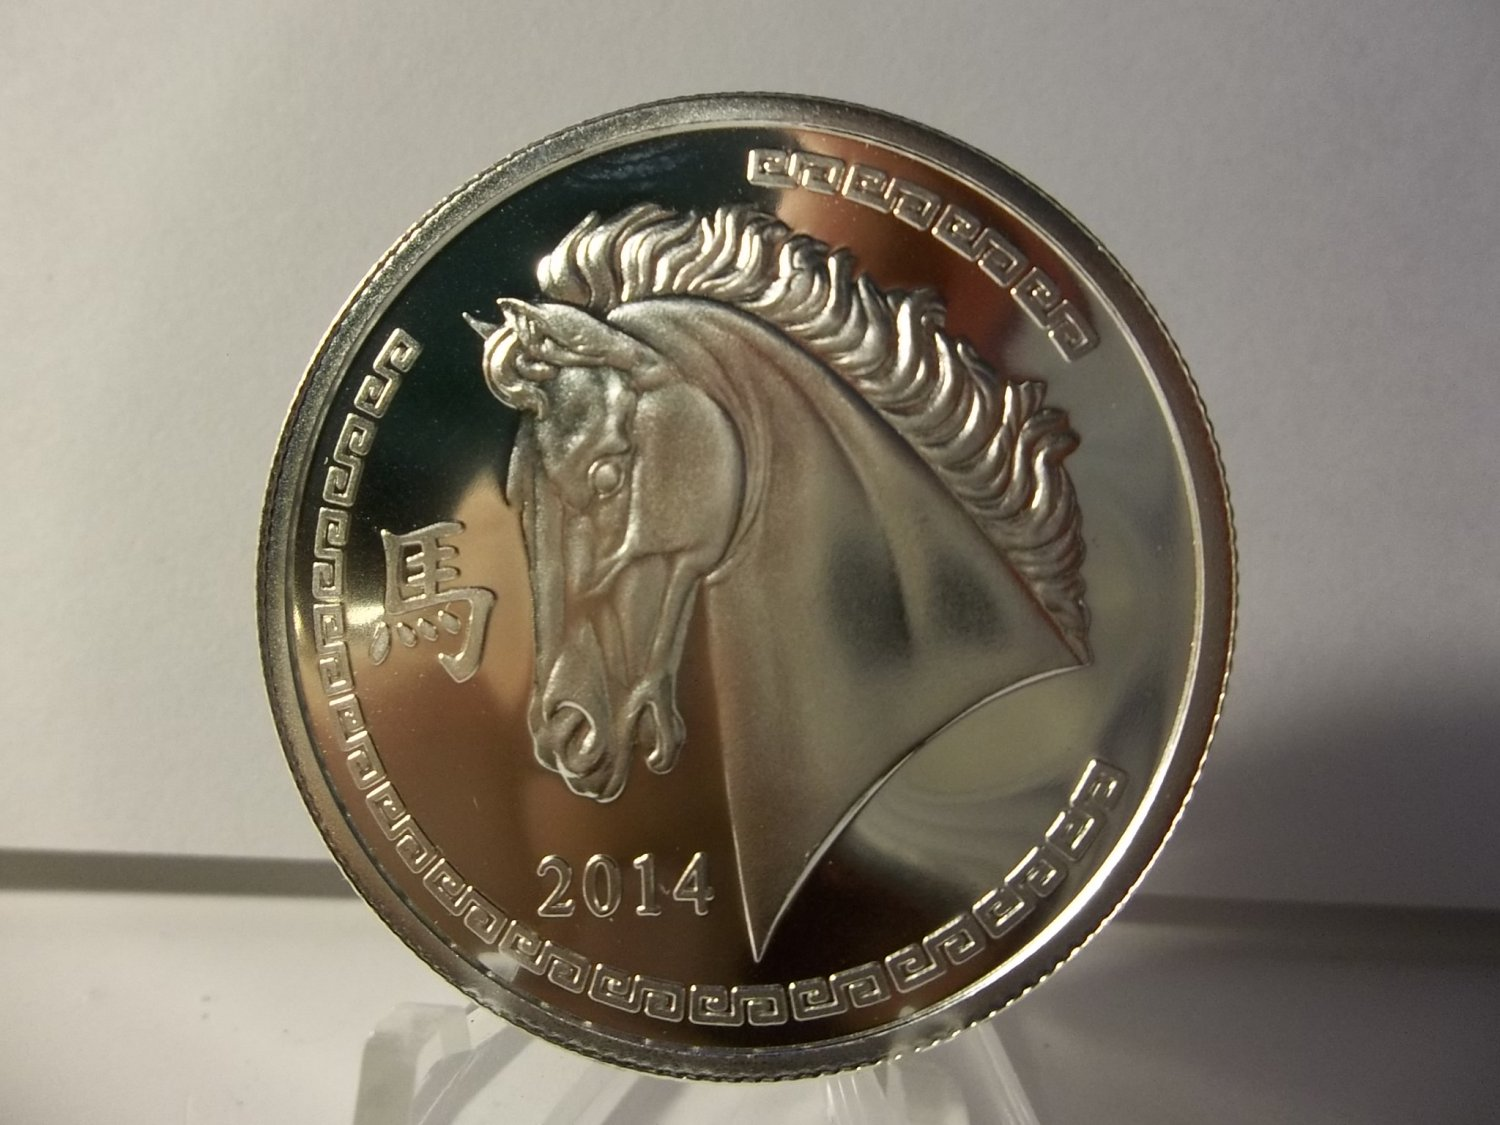 2014 1 oz Year of the Horse Proof Like Silver Bullion